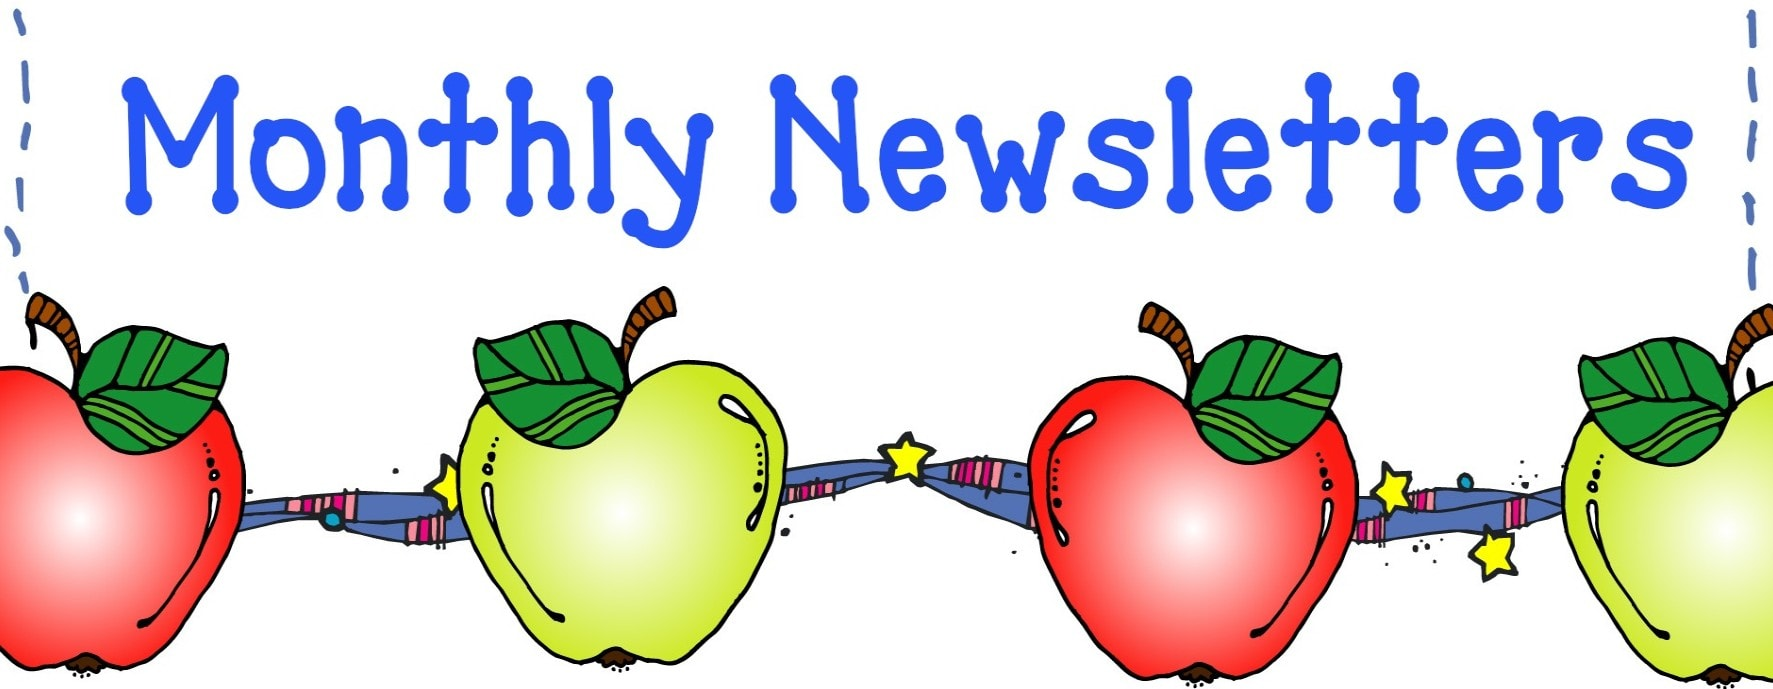 Newsletter clipart grade school. Home orchard elementary